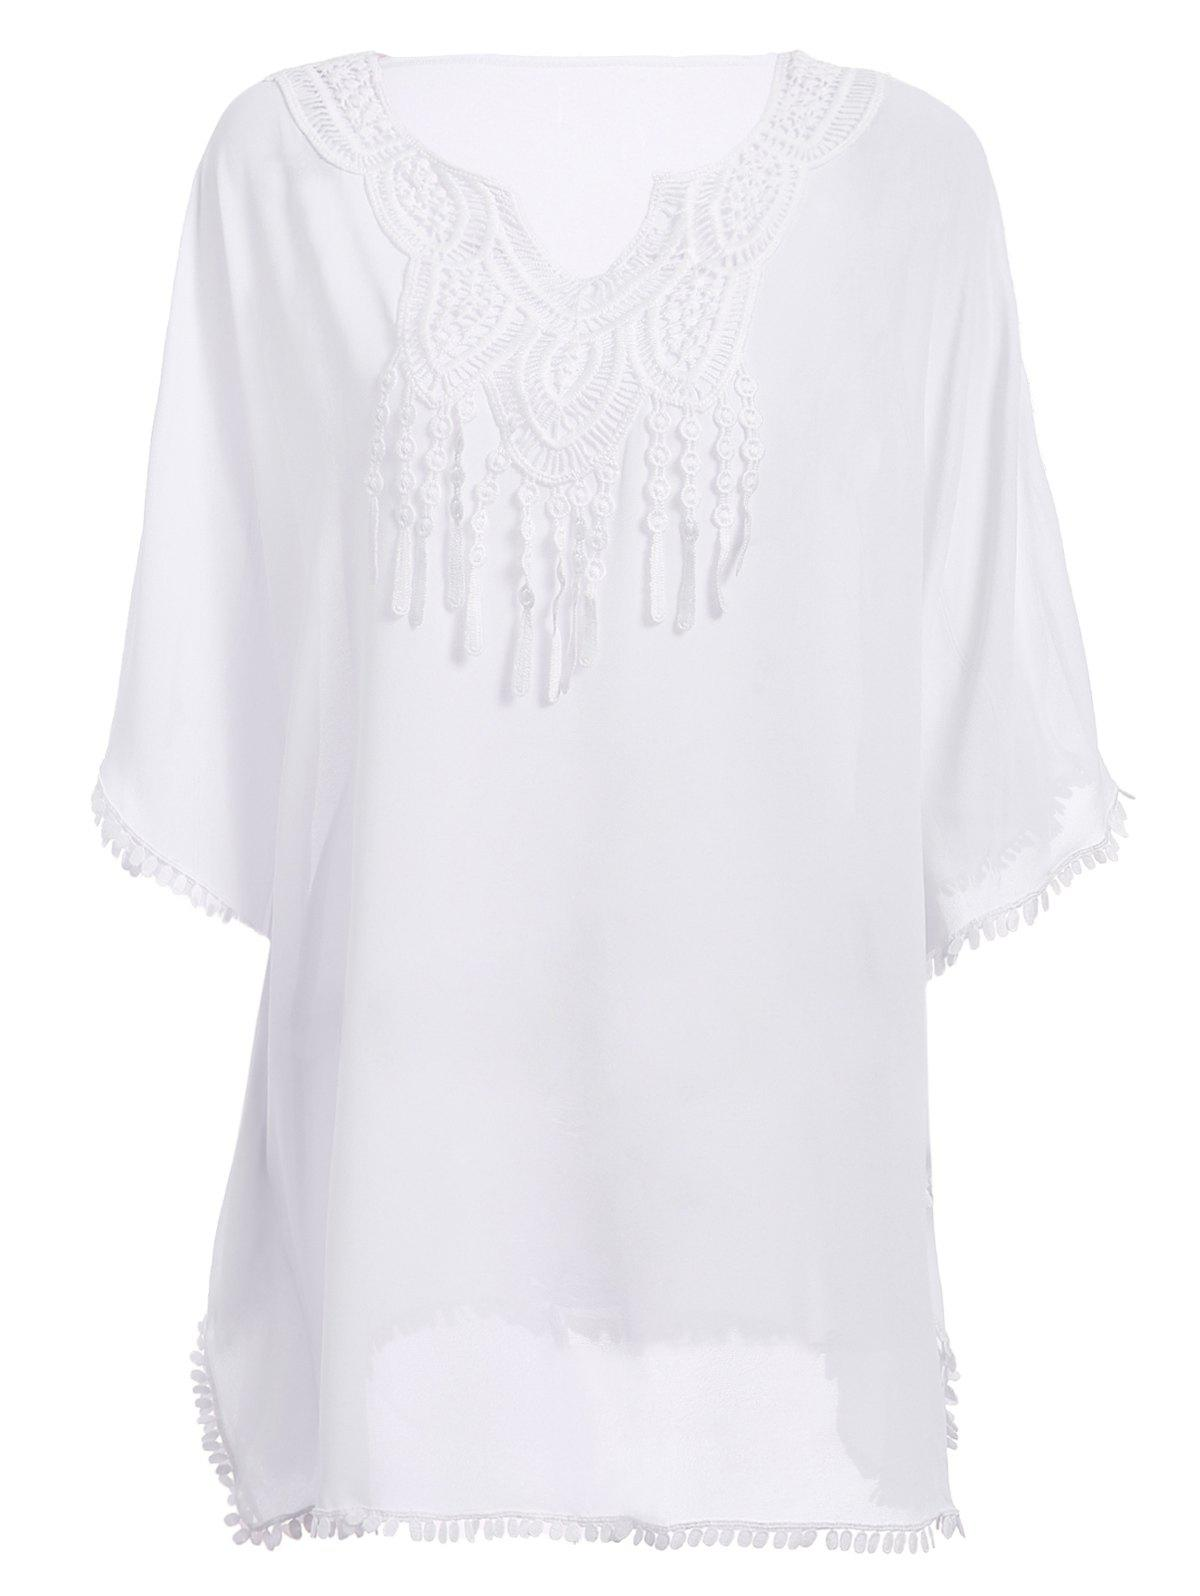 Chic Batwing Sleeve Notched Neck Macrame Spliced Women's Cover Up - WHITE ONE SIZE(FIT SIZE XS TO M)